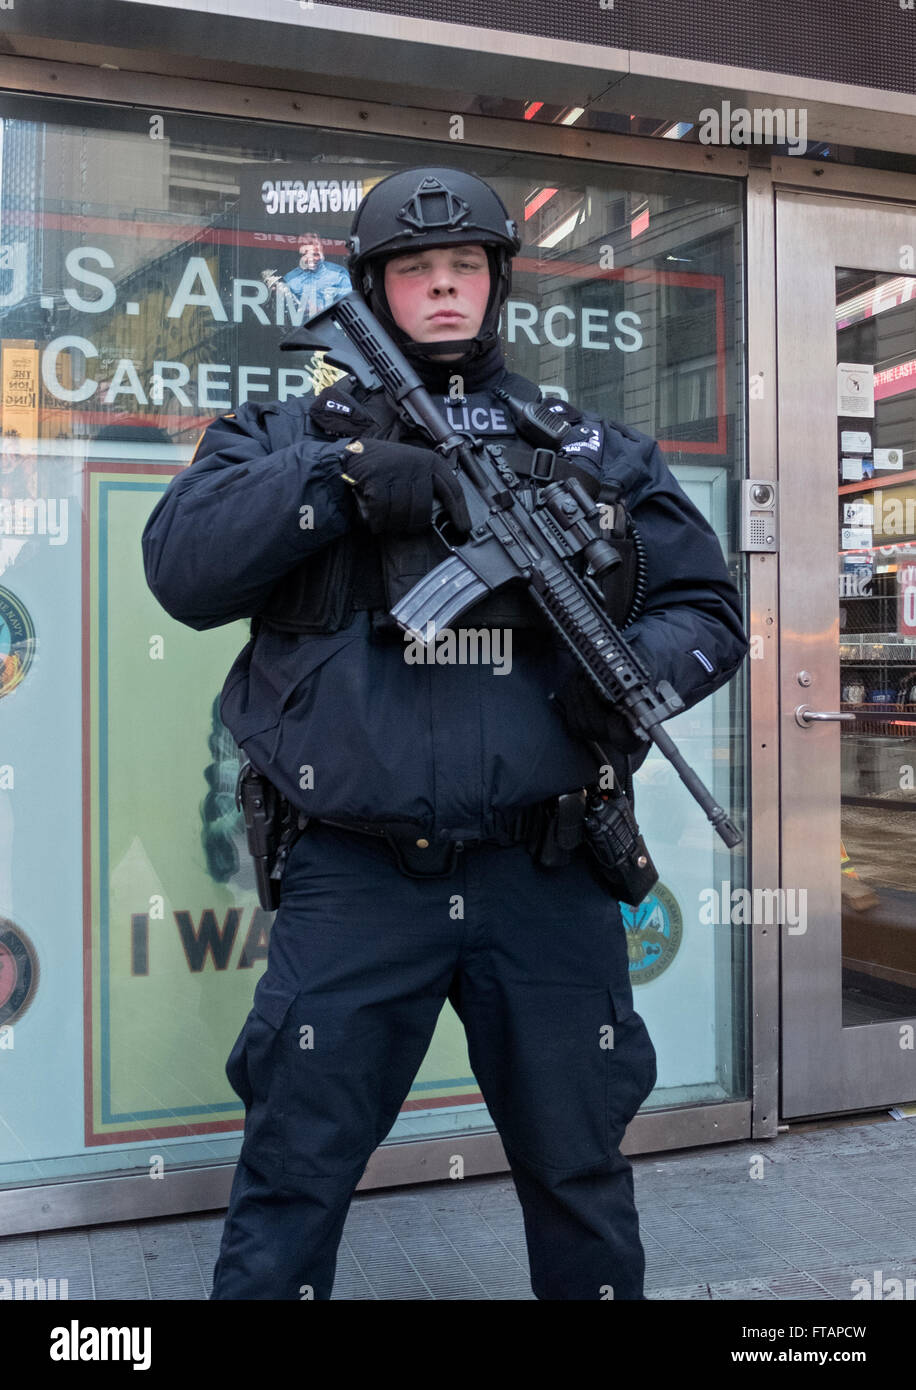 Portrait of a policeman from the NYPD counterterrorism unit patrolling in Times Square, Manhattan, New York City. - Stock Image